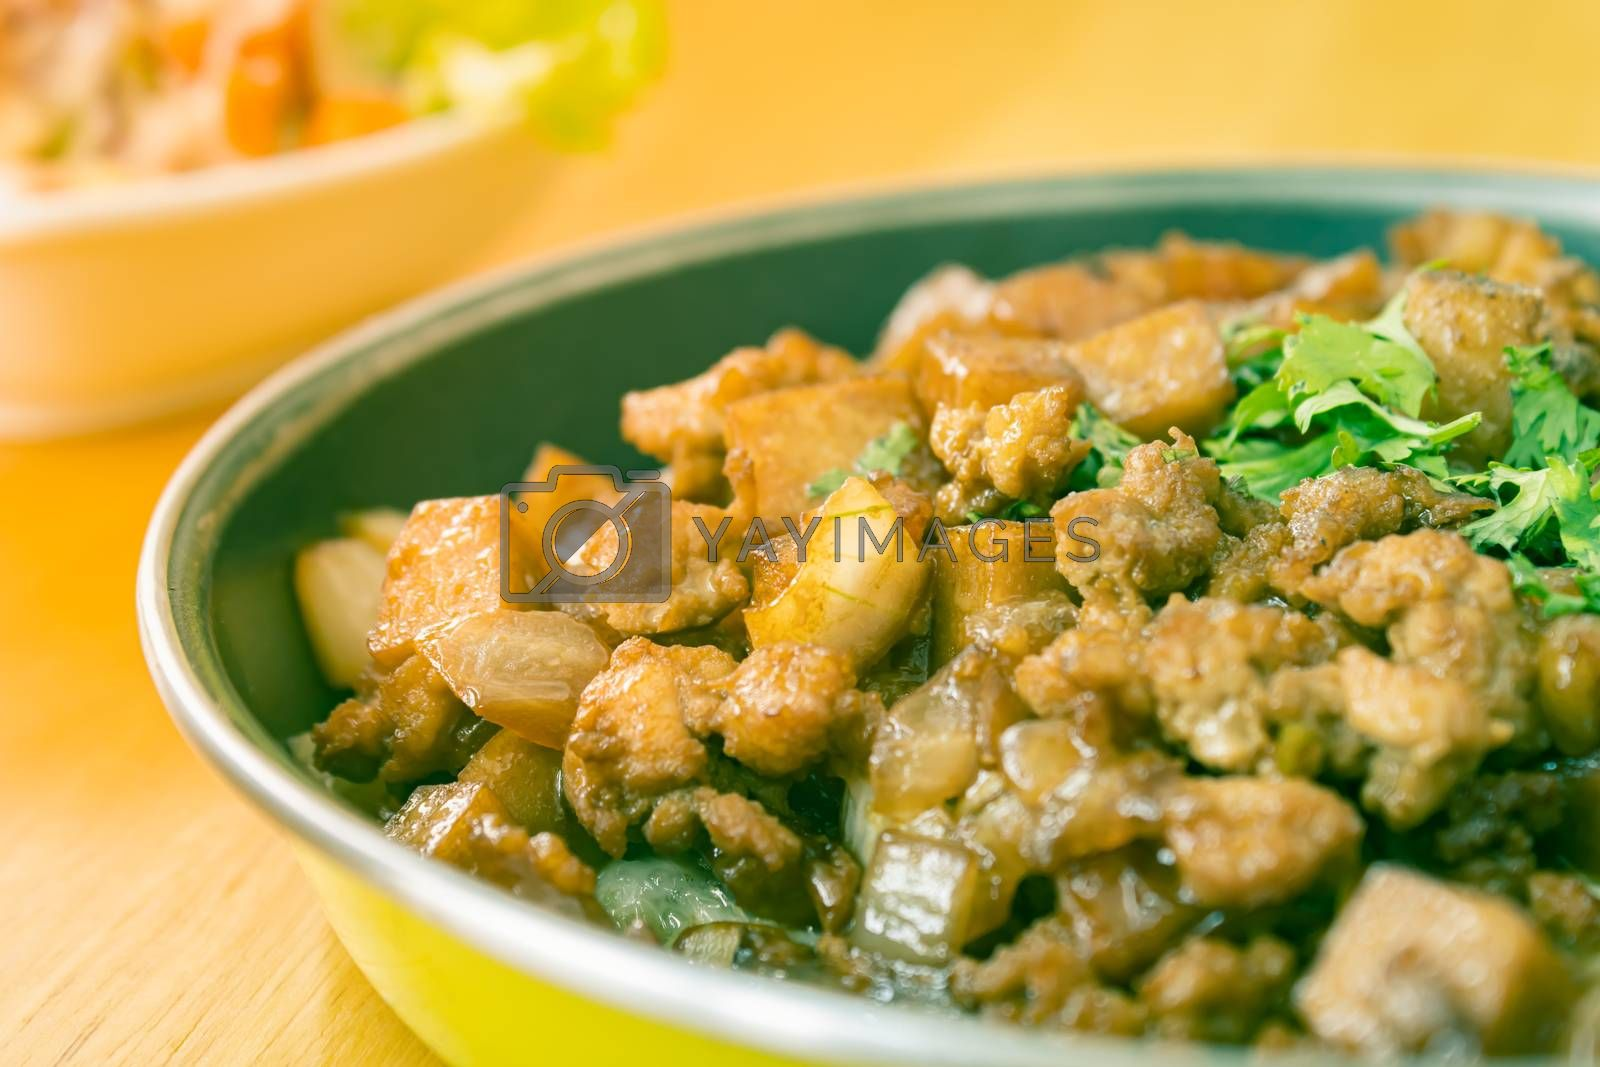 Stir Fried Pork with Onion and Garlic and Black Soy Sauce and Coriander Topping and Tofu with Natural Light on Right Frame in Vintage Tone